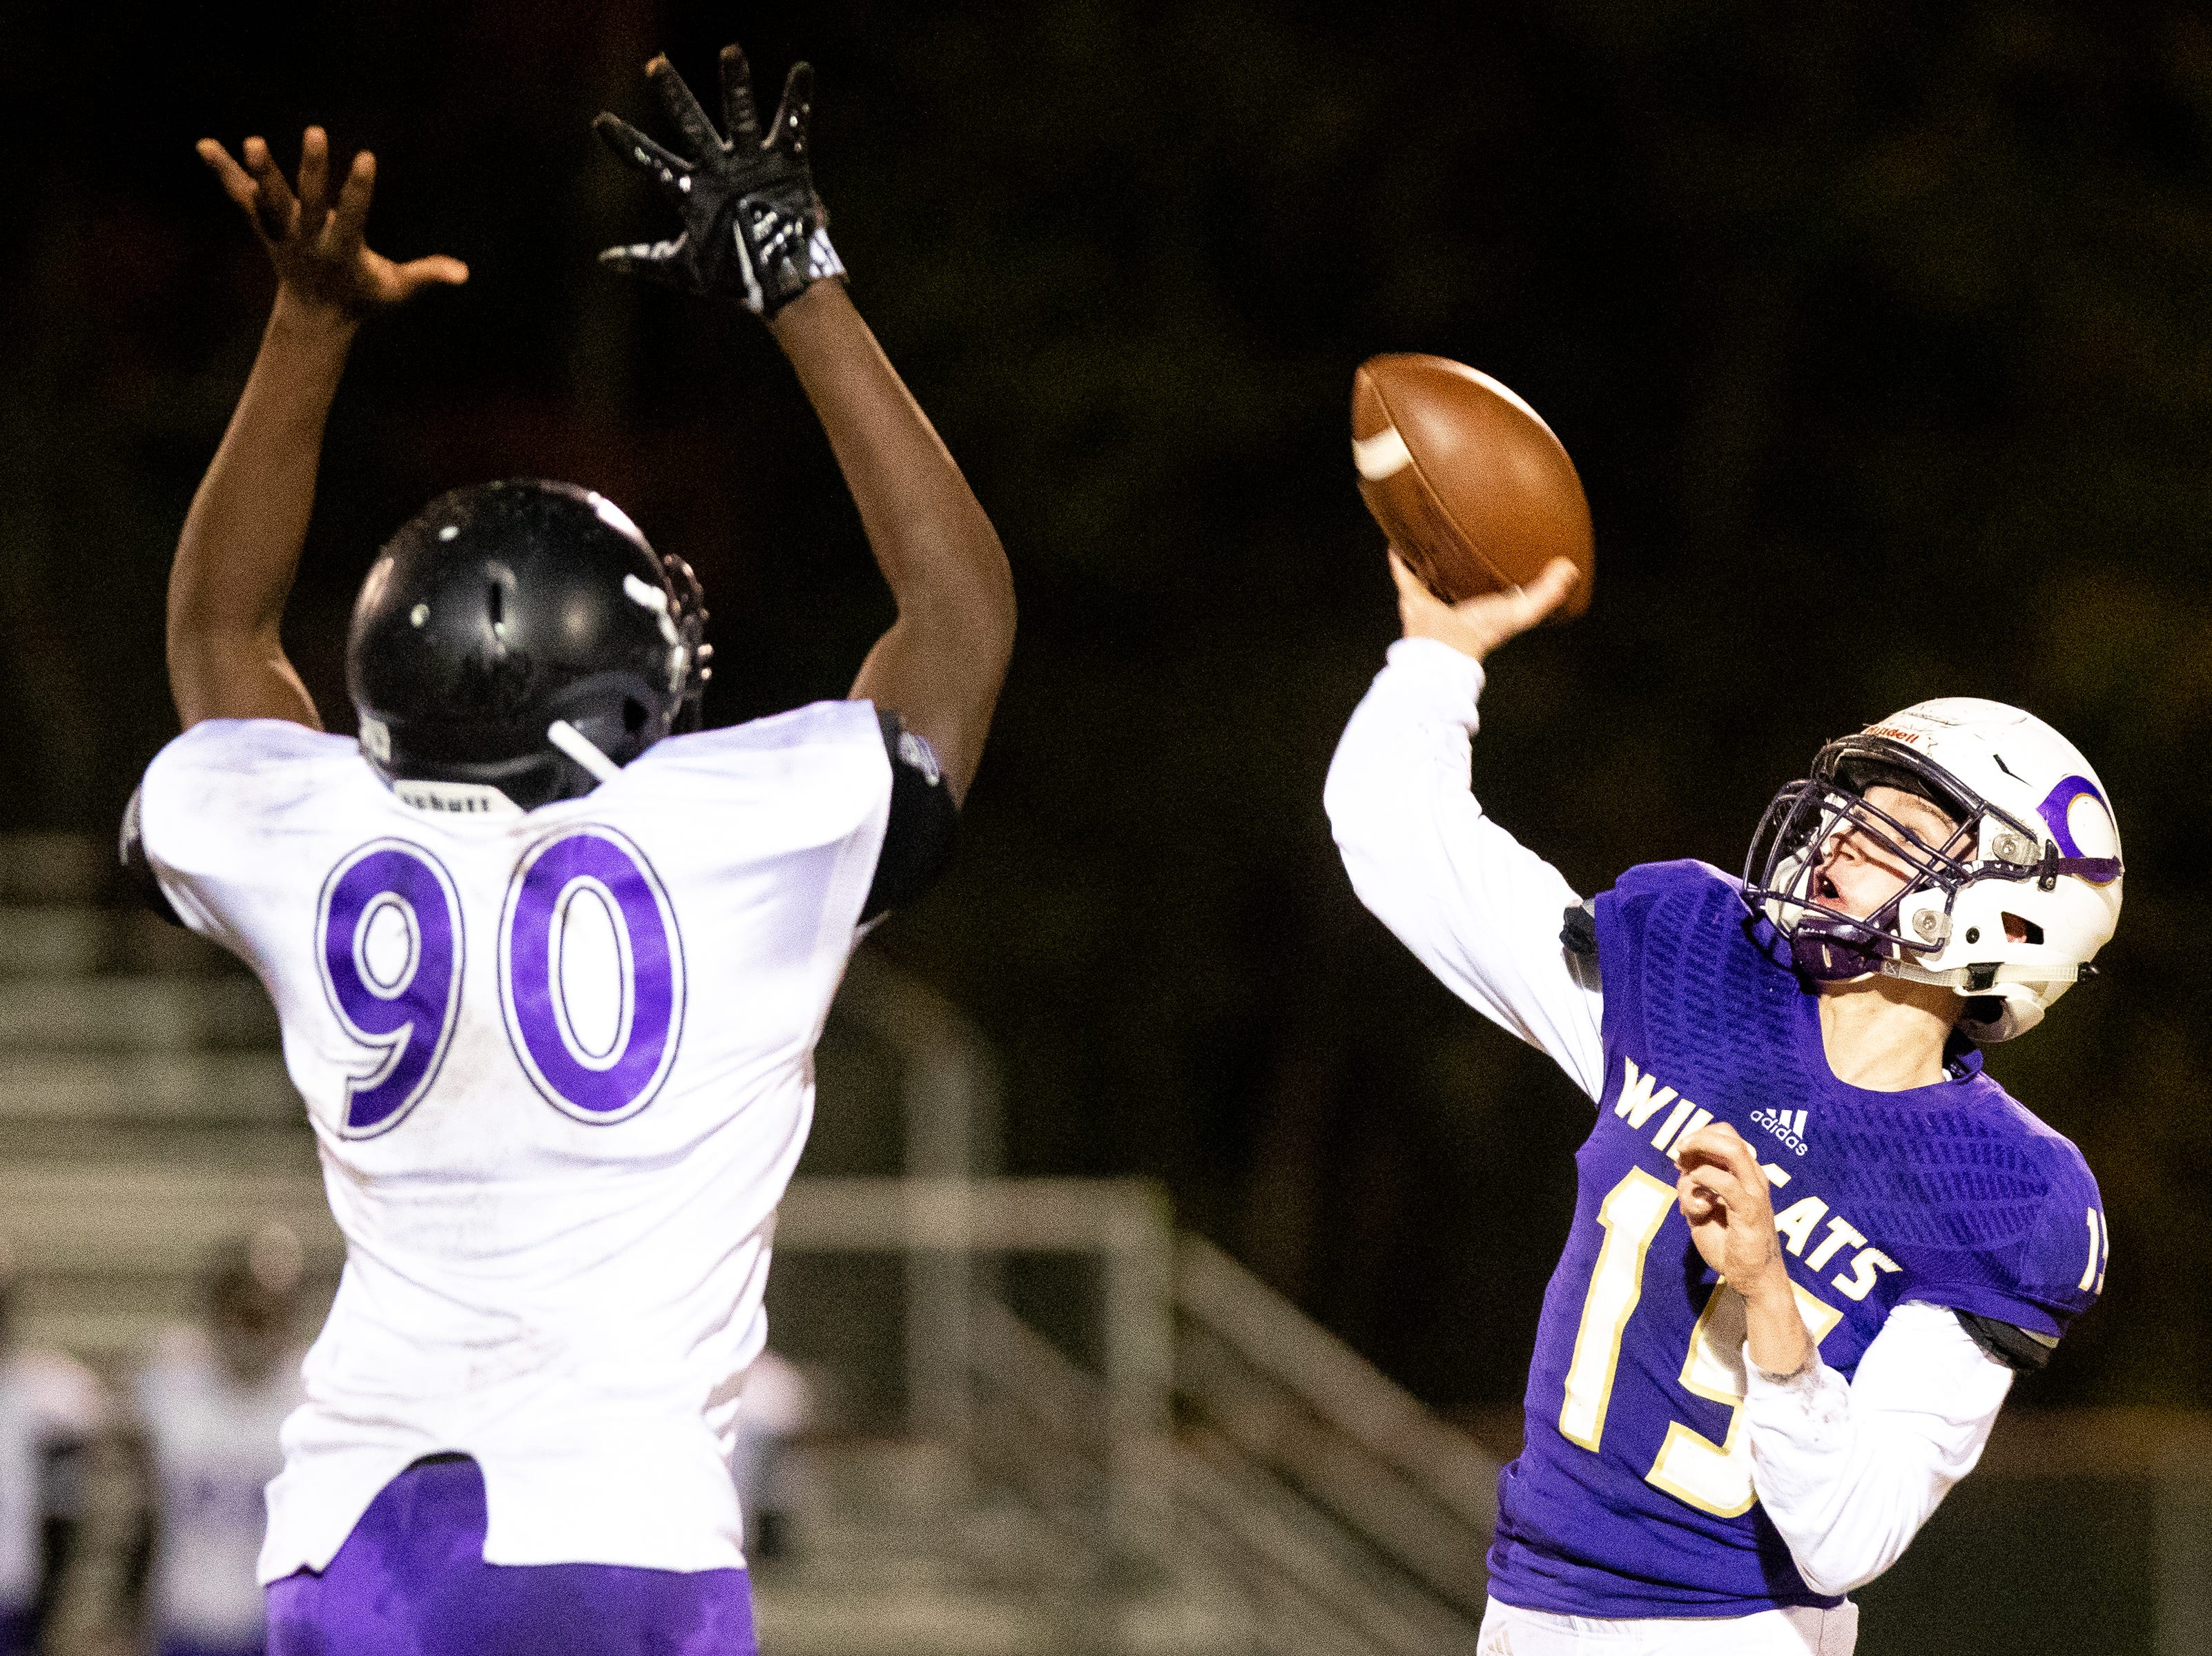 Backup quarterback Colby Cook (15) of Clarksville High throws the ball during the first half at Clarksville High Friday, Nov. 2, 2018, in Clarksville, Tenn.